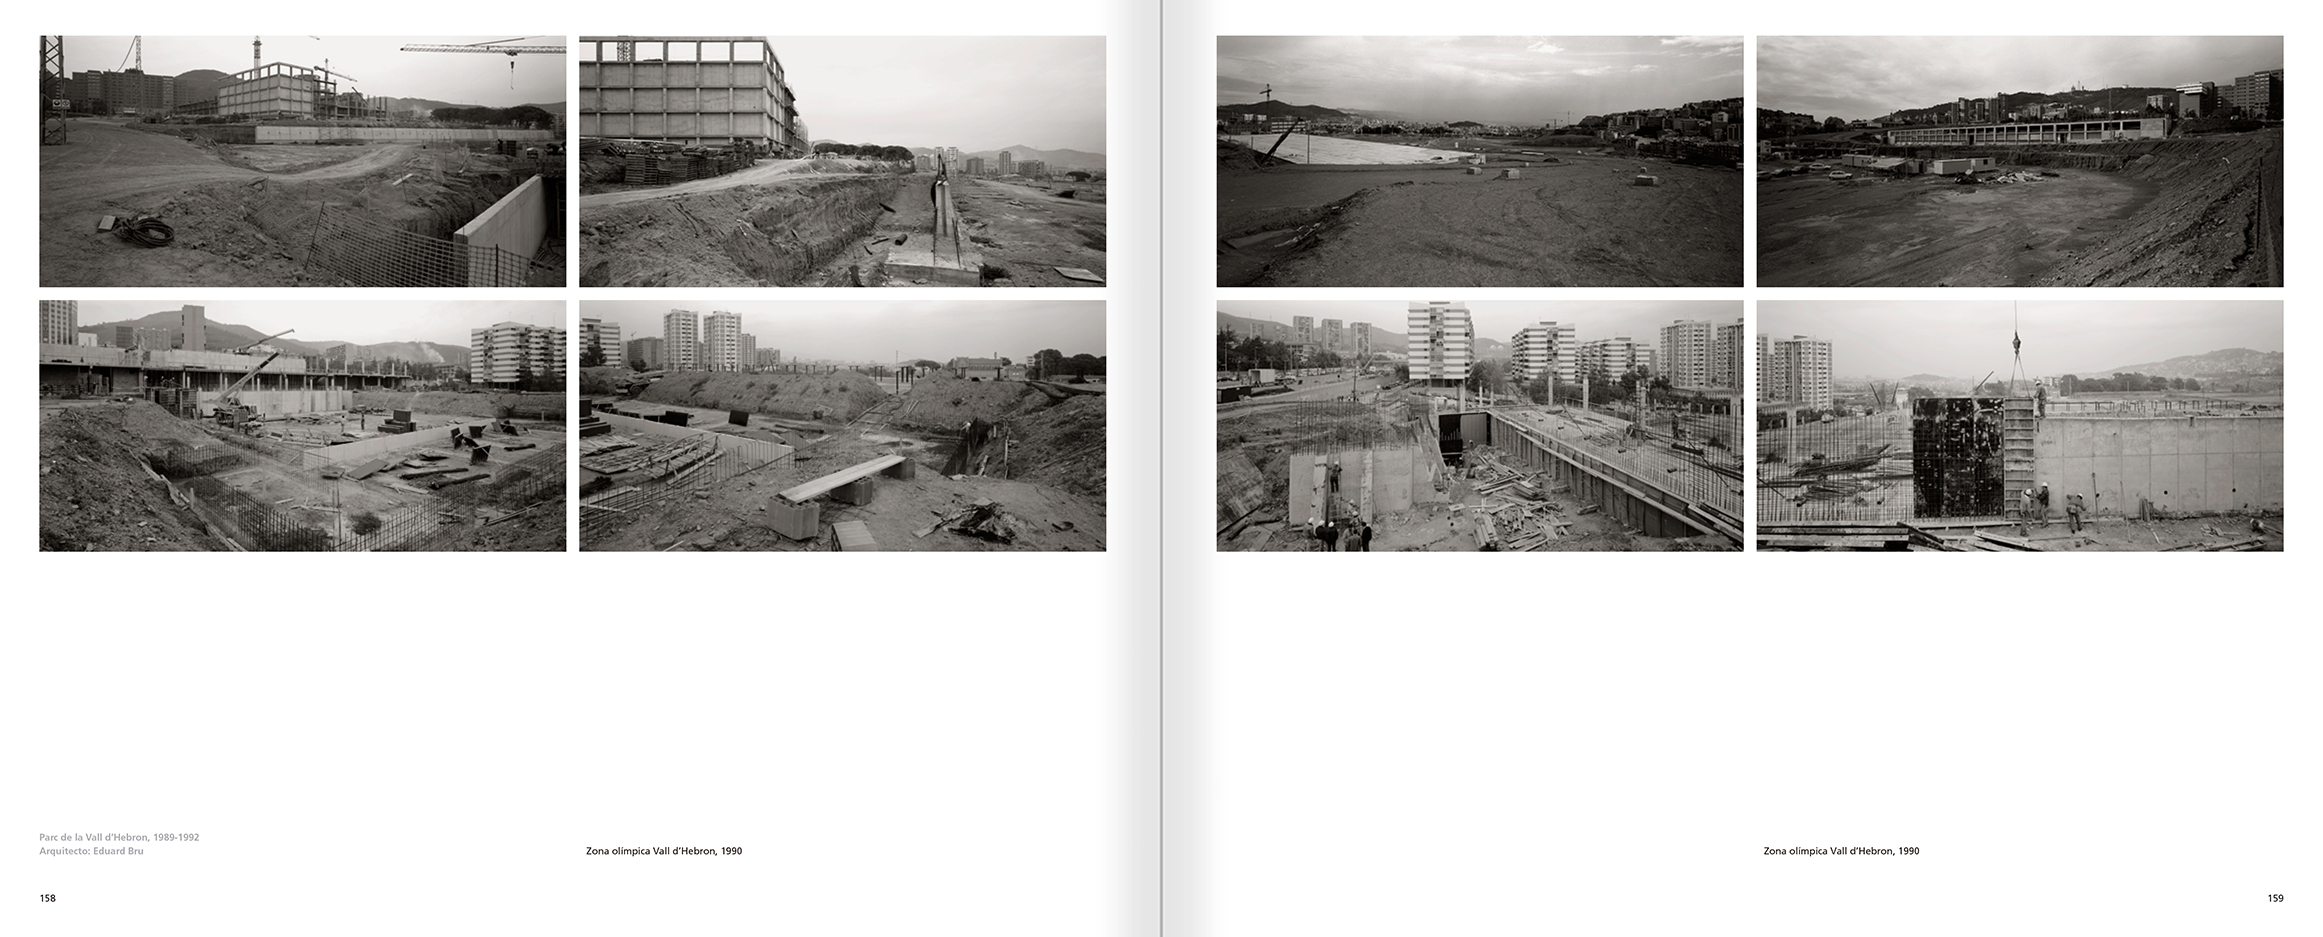 Selection from the catalogue 'Barcelona 1978-1997. Manolo Laguillo', pages 158 and 159